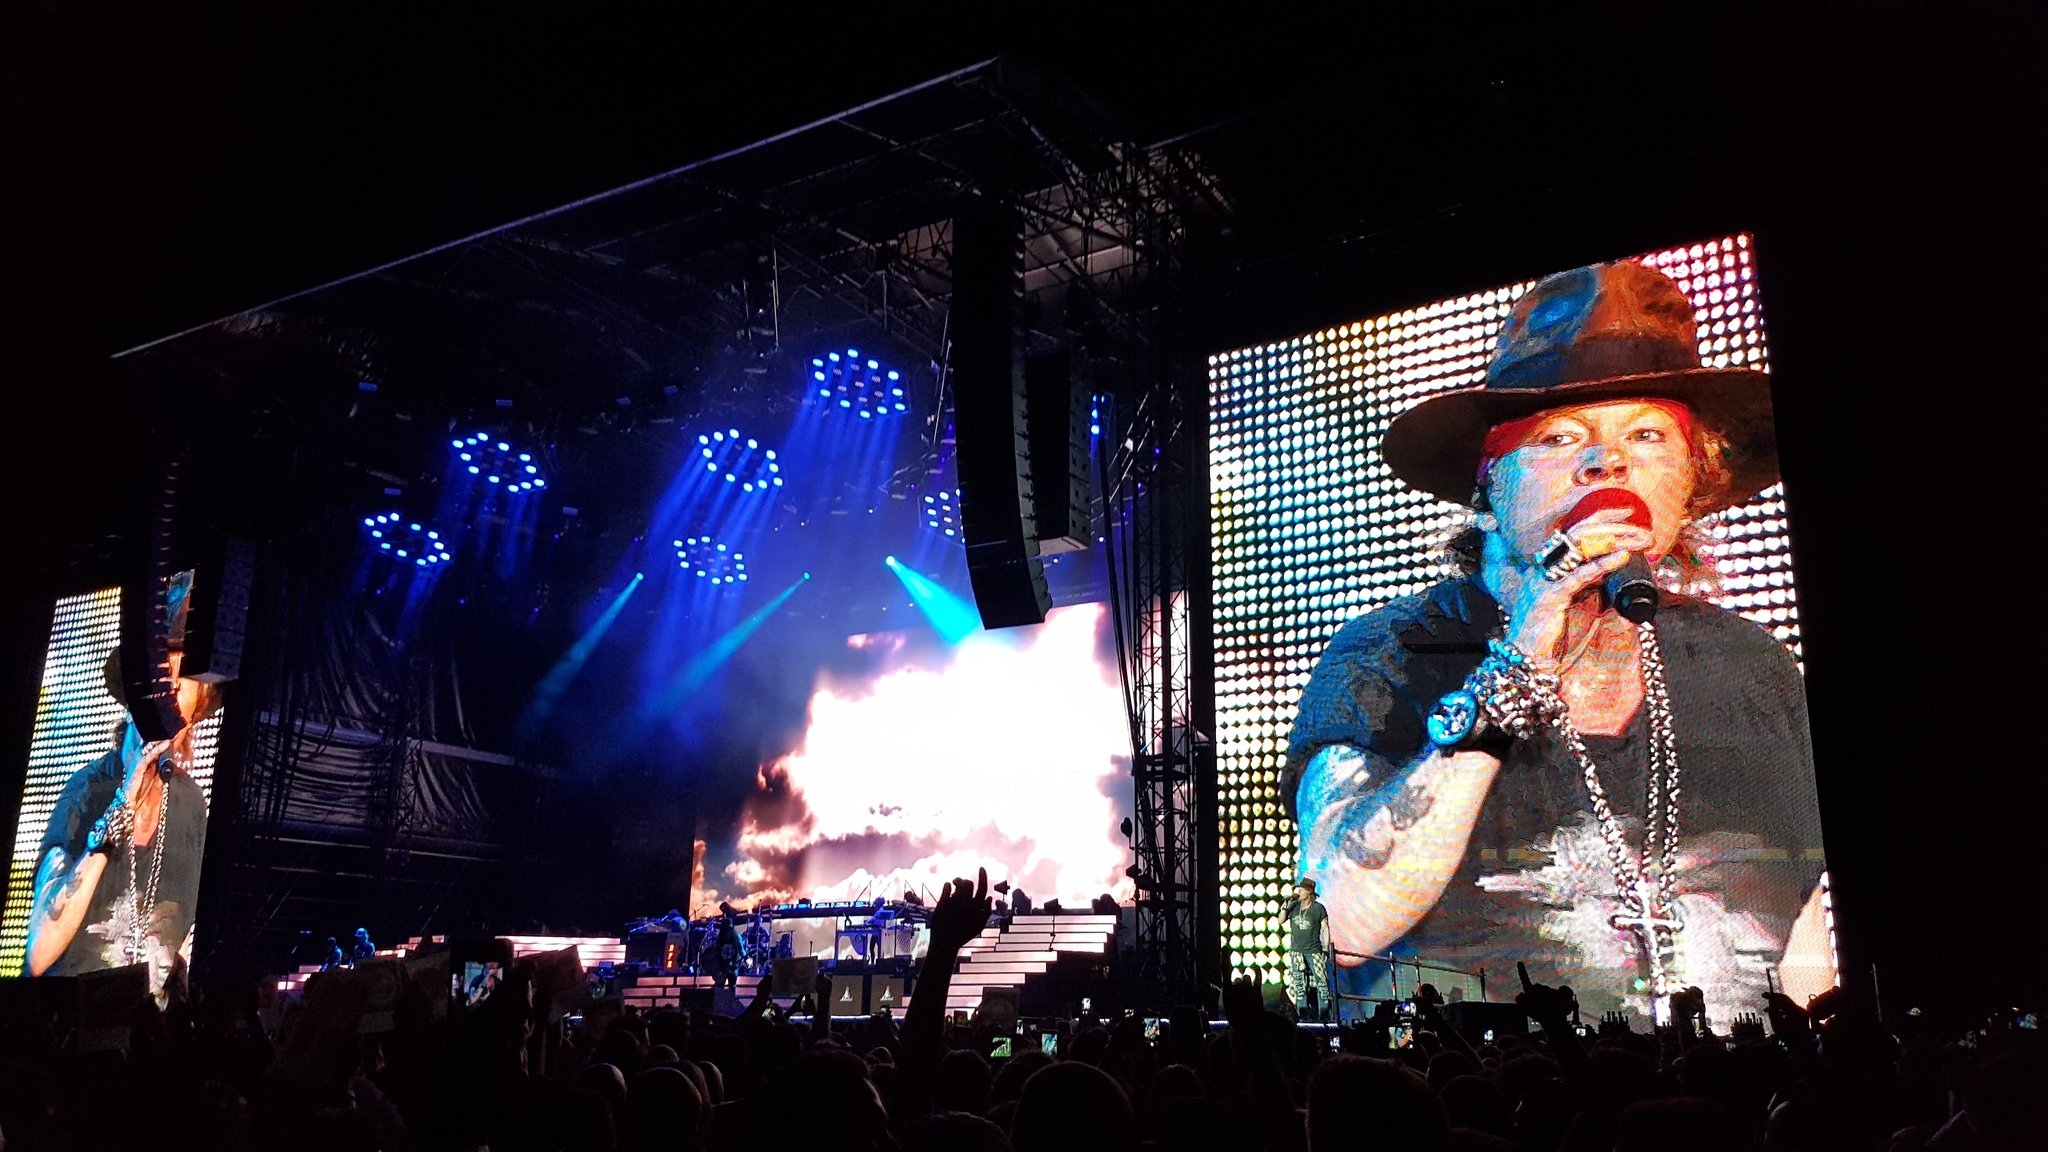 axl rose imola 2017 guns n roses